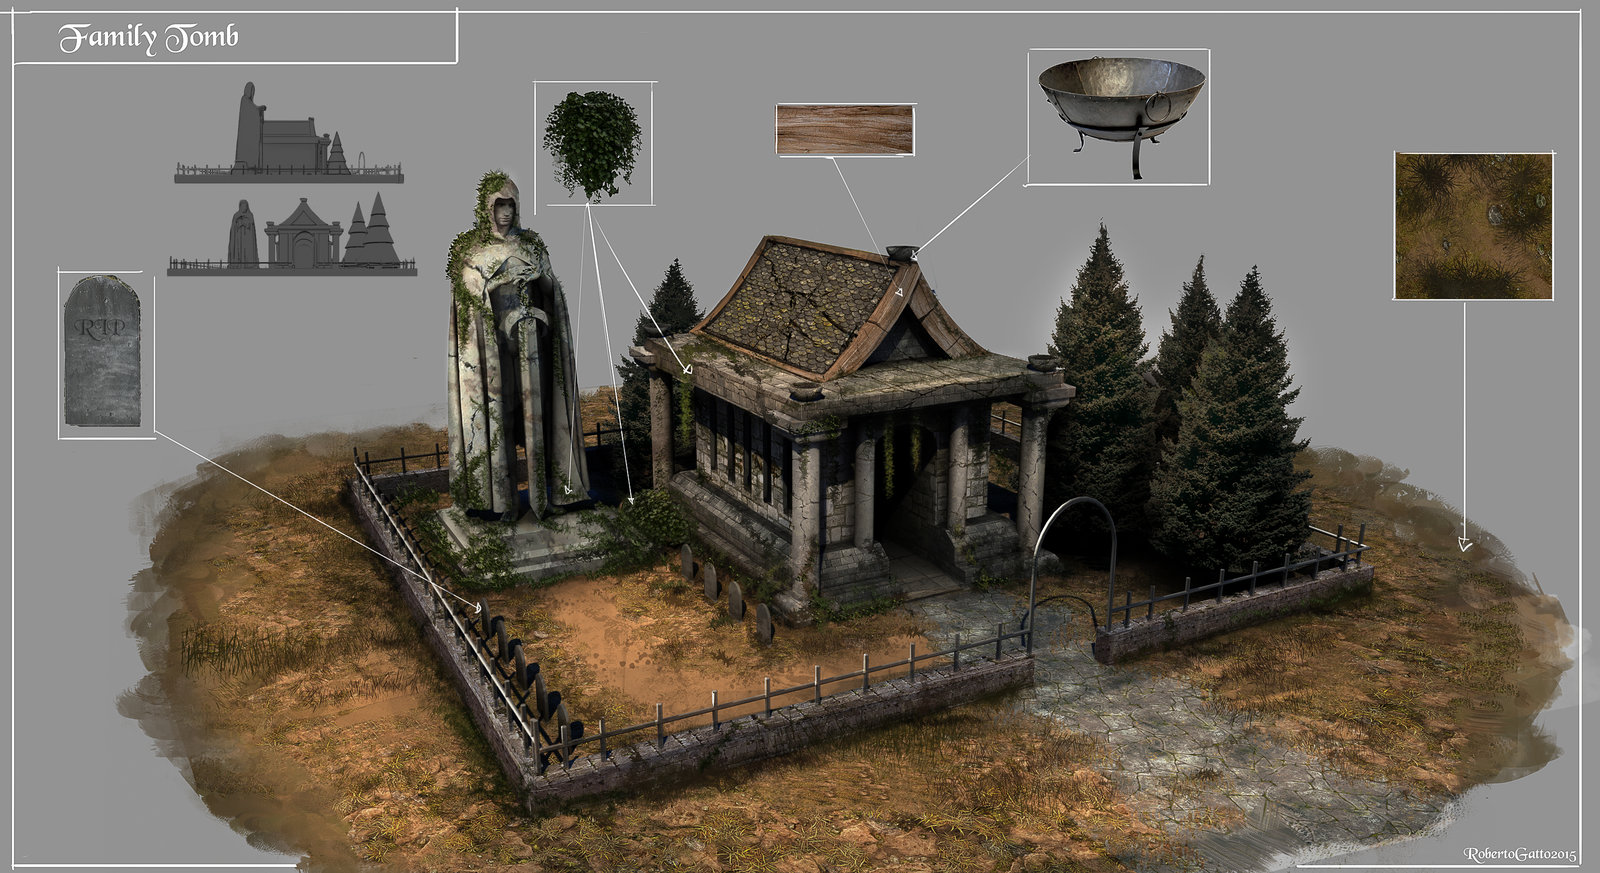 Family tomb concept